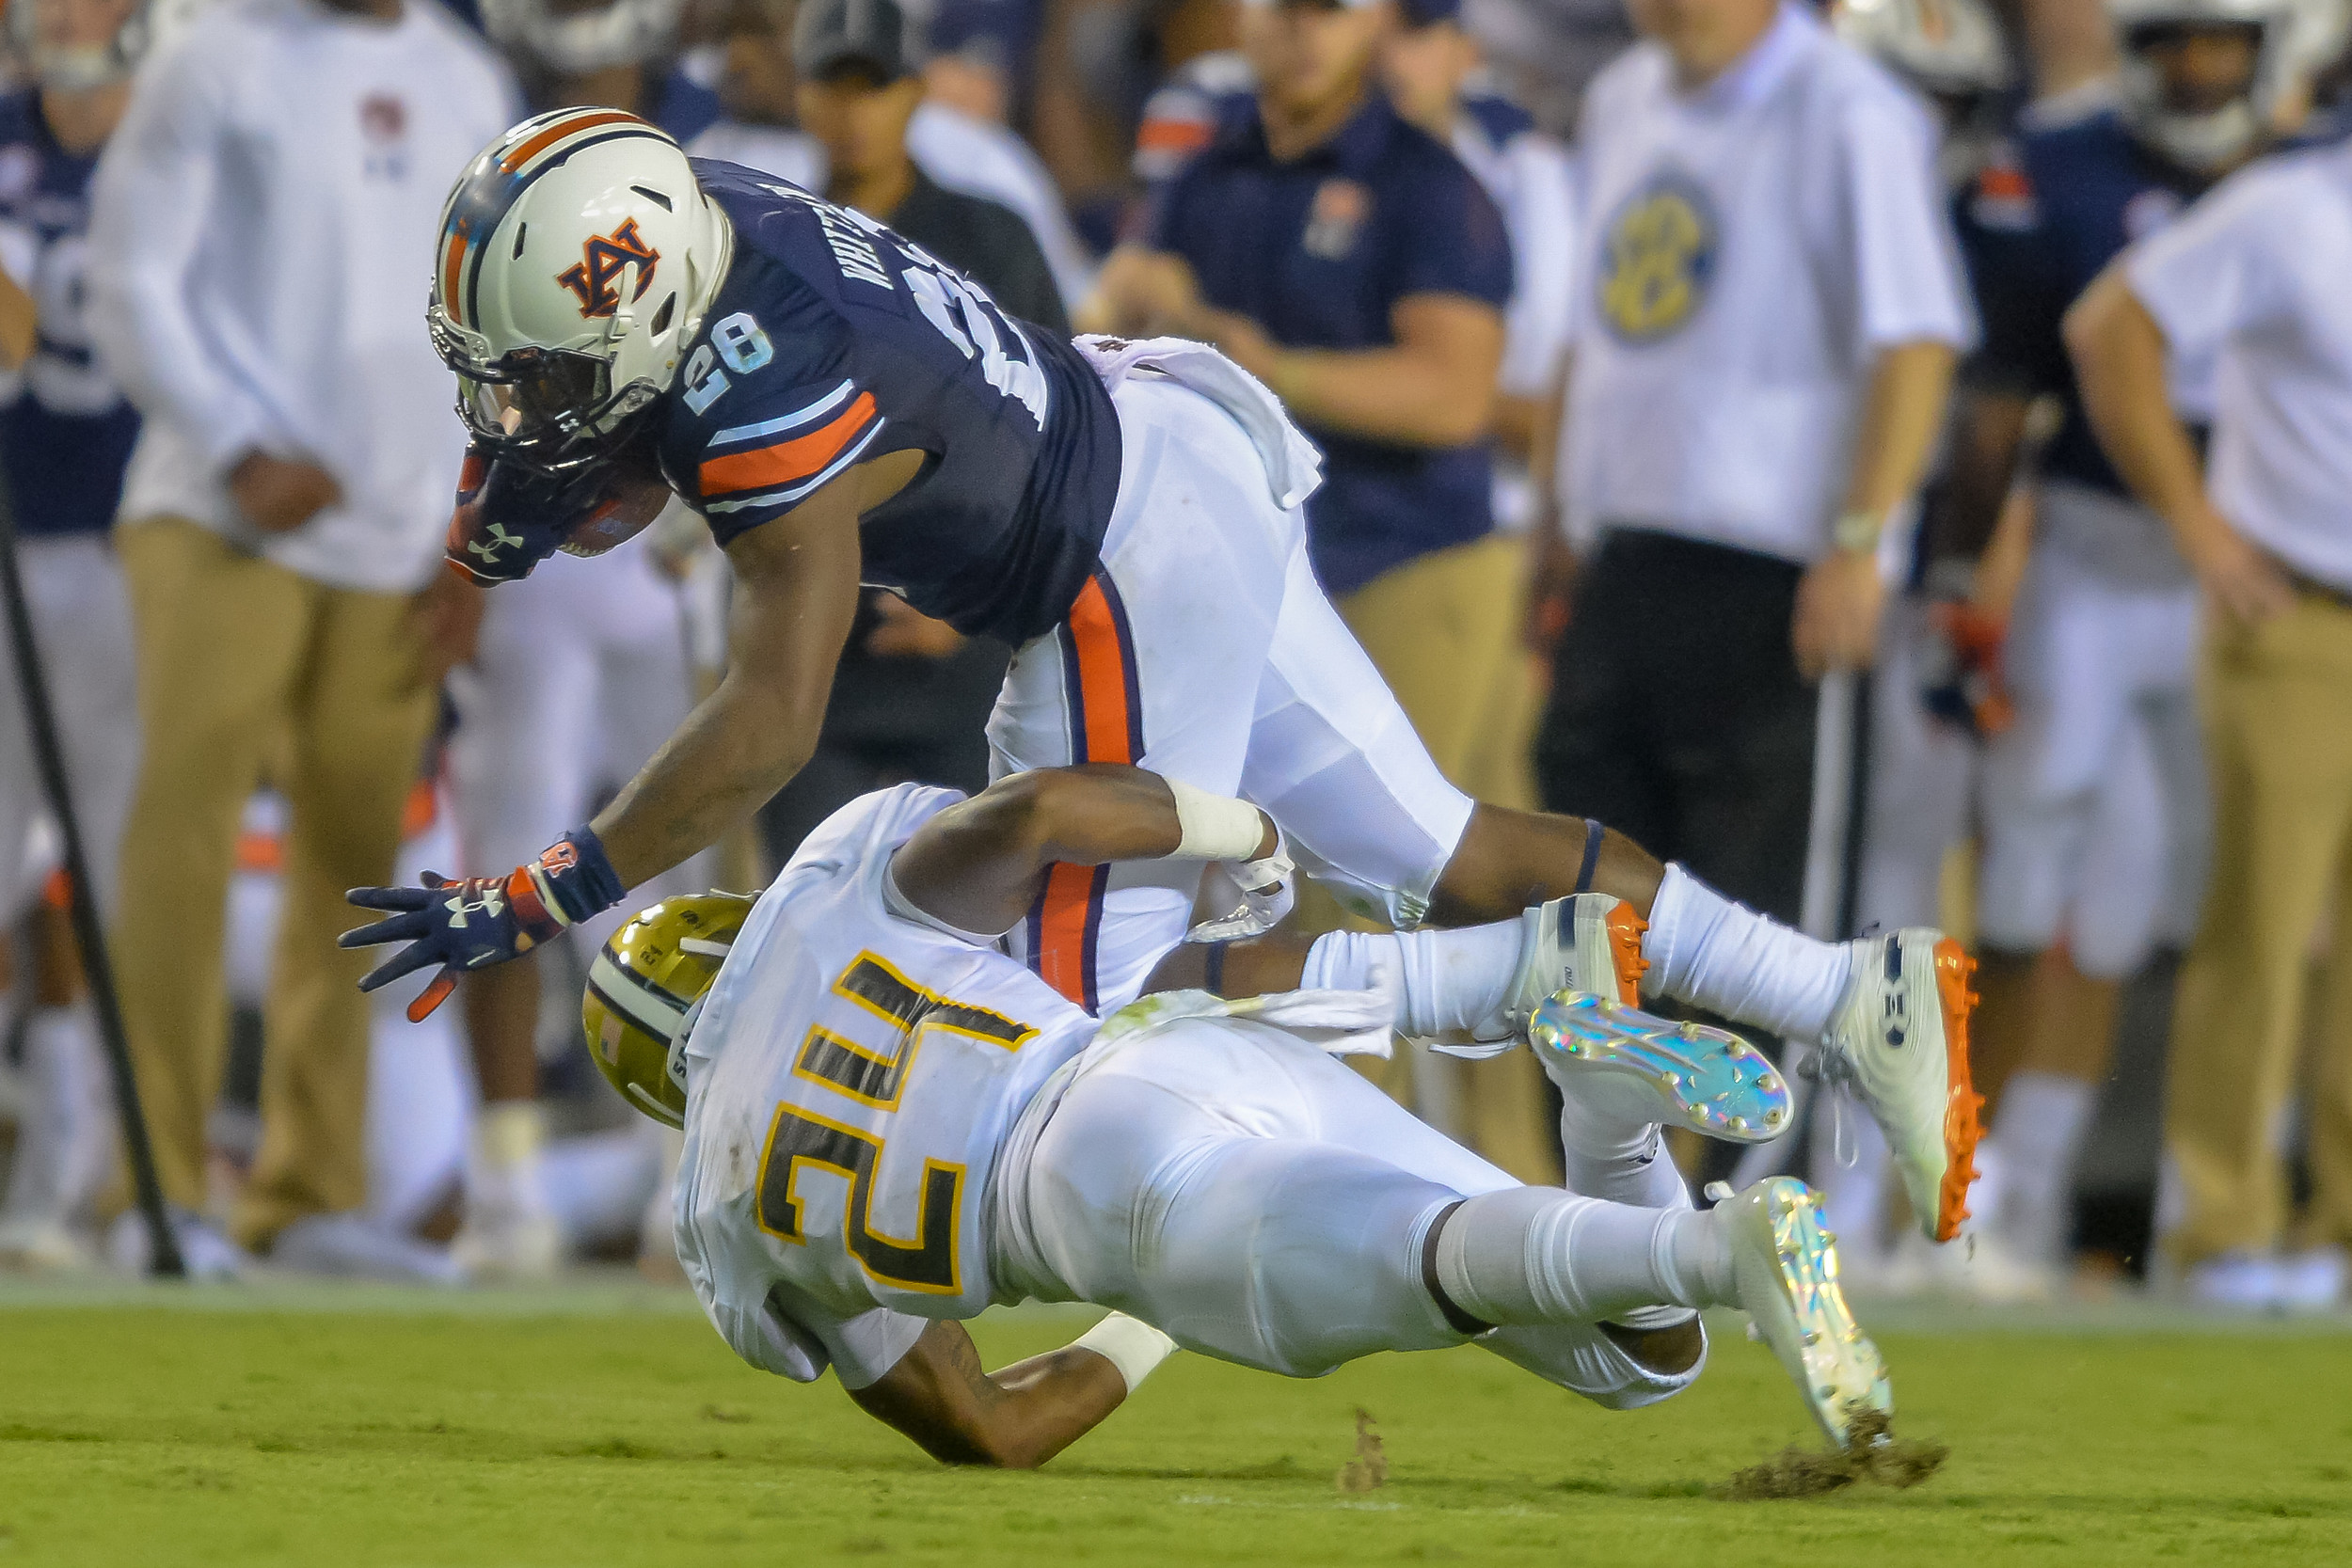 Auburn Tigers running back JaTarvious Whitlow (28) runs though the tackle of Alabama State Hornets defensive back Joshua Hill (24) during the first half of Saturday's game, at Jordan Hare Stadium in Auburn, AL. (Contributed by Jeff Johnsey)